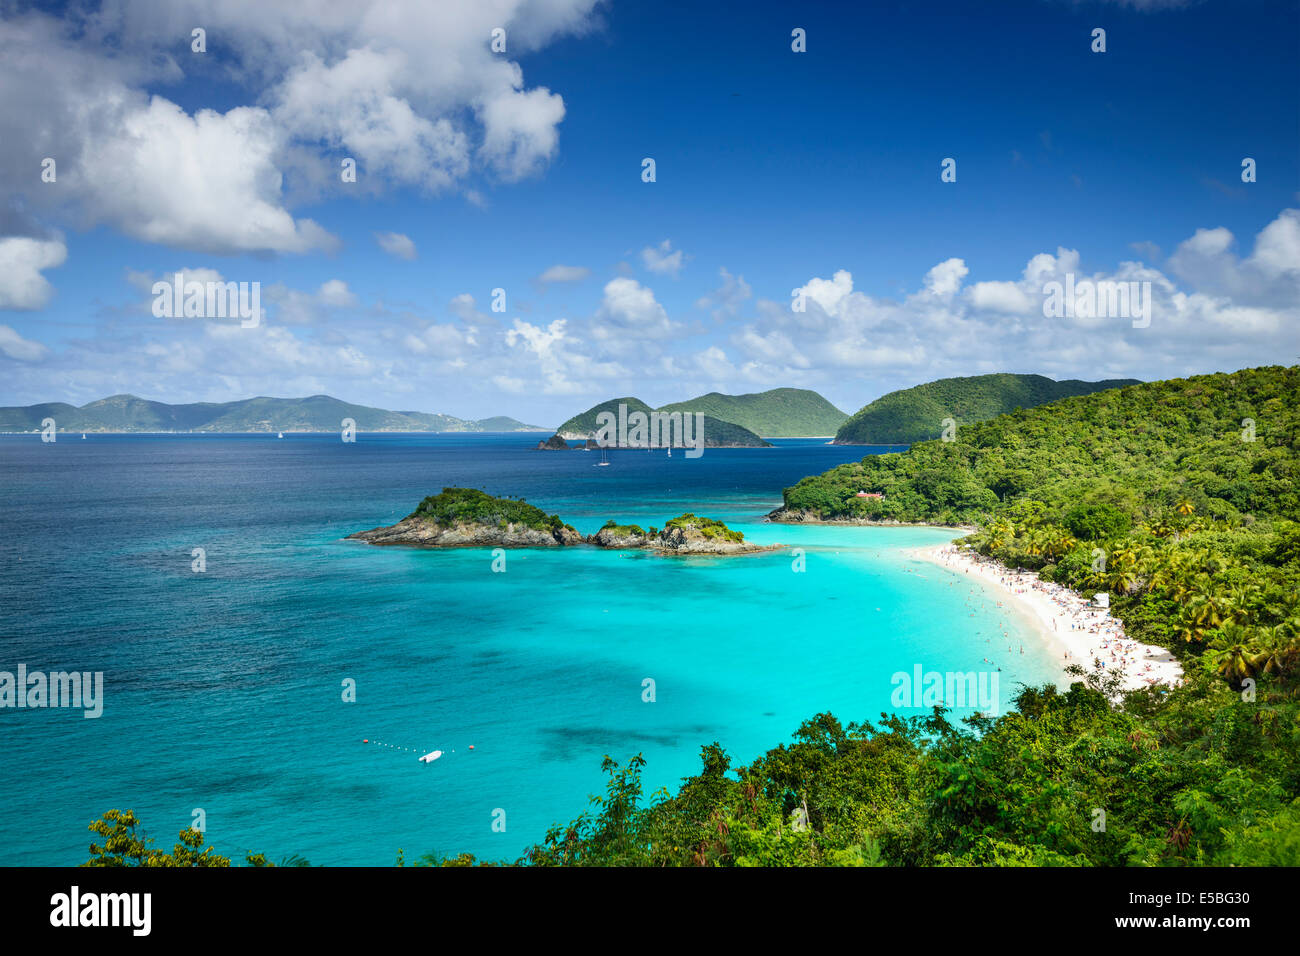 St. John, US Virgin Islands at Trunk Bay. - Stock Image